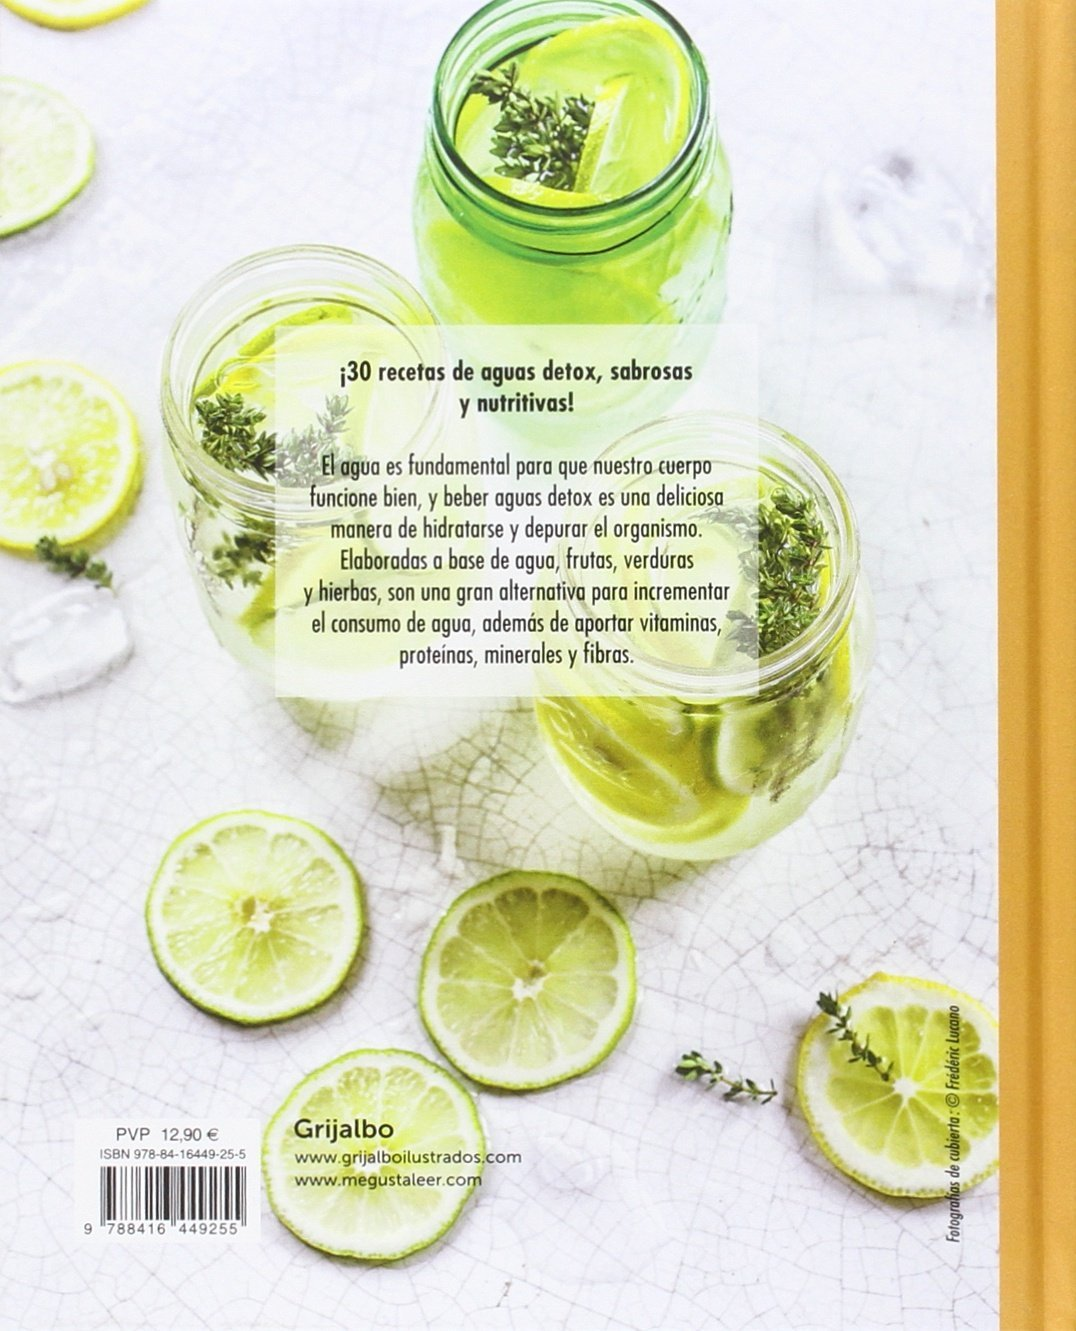 Aguas detox / Detox Water (Spanish Edition): Sonia Lucano: 9788416449255: Amazon.com: Books